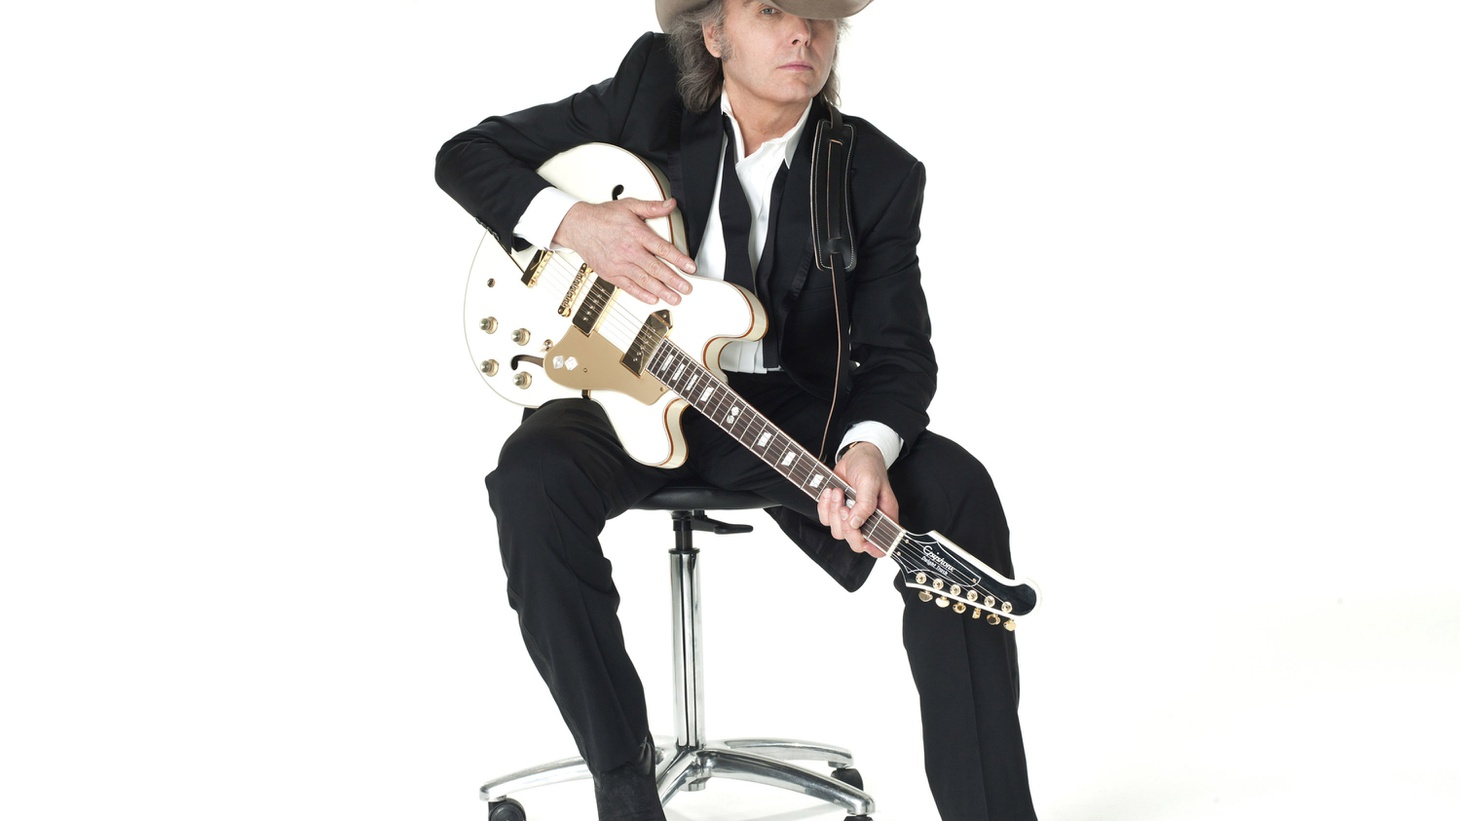 Dwight Yoakam has sold 25 million records worldwide thanks to his unique combo of rock and country.